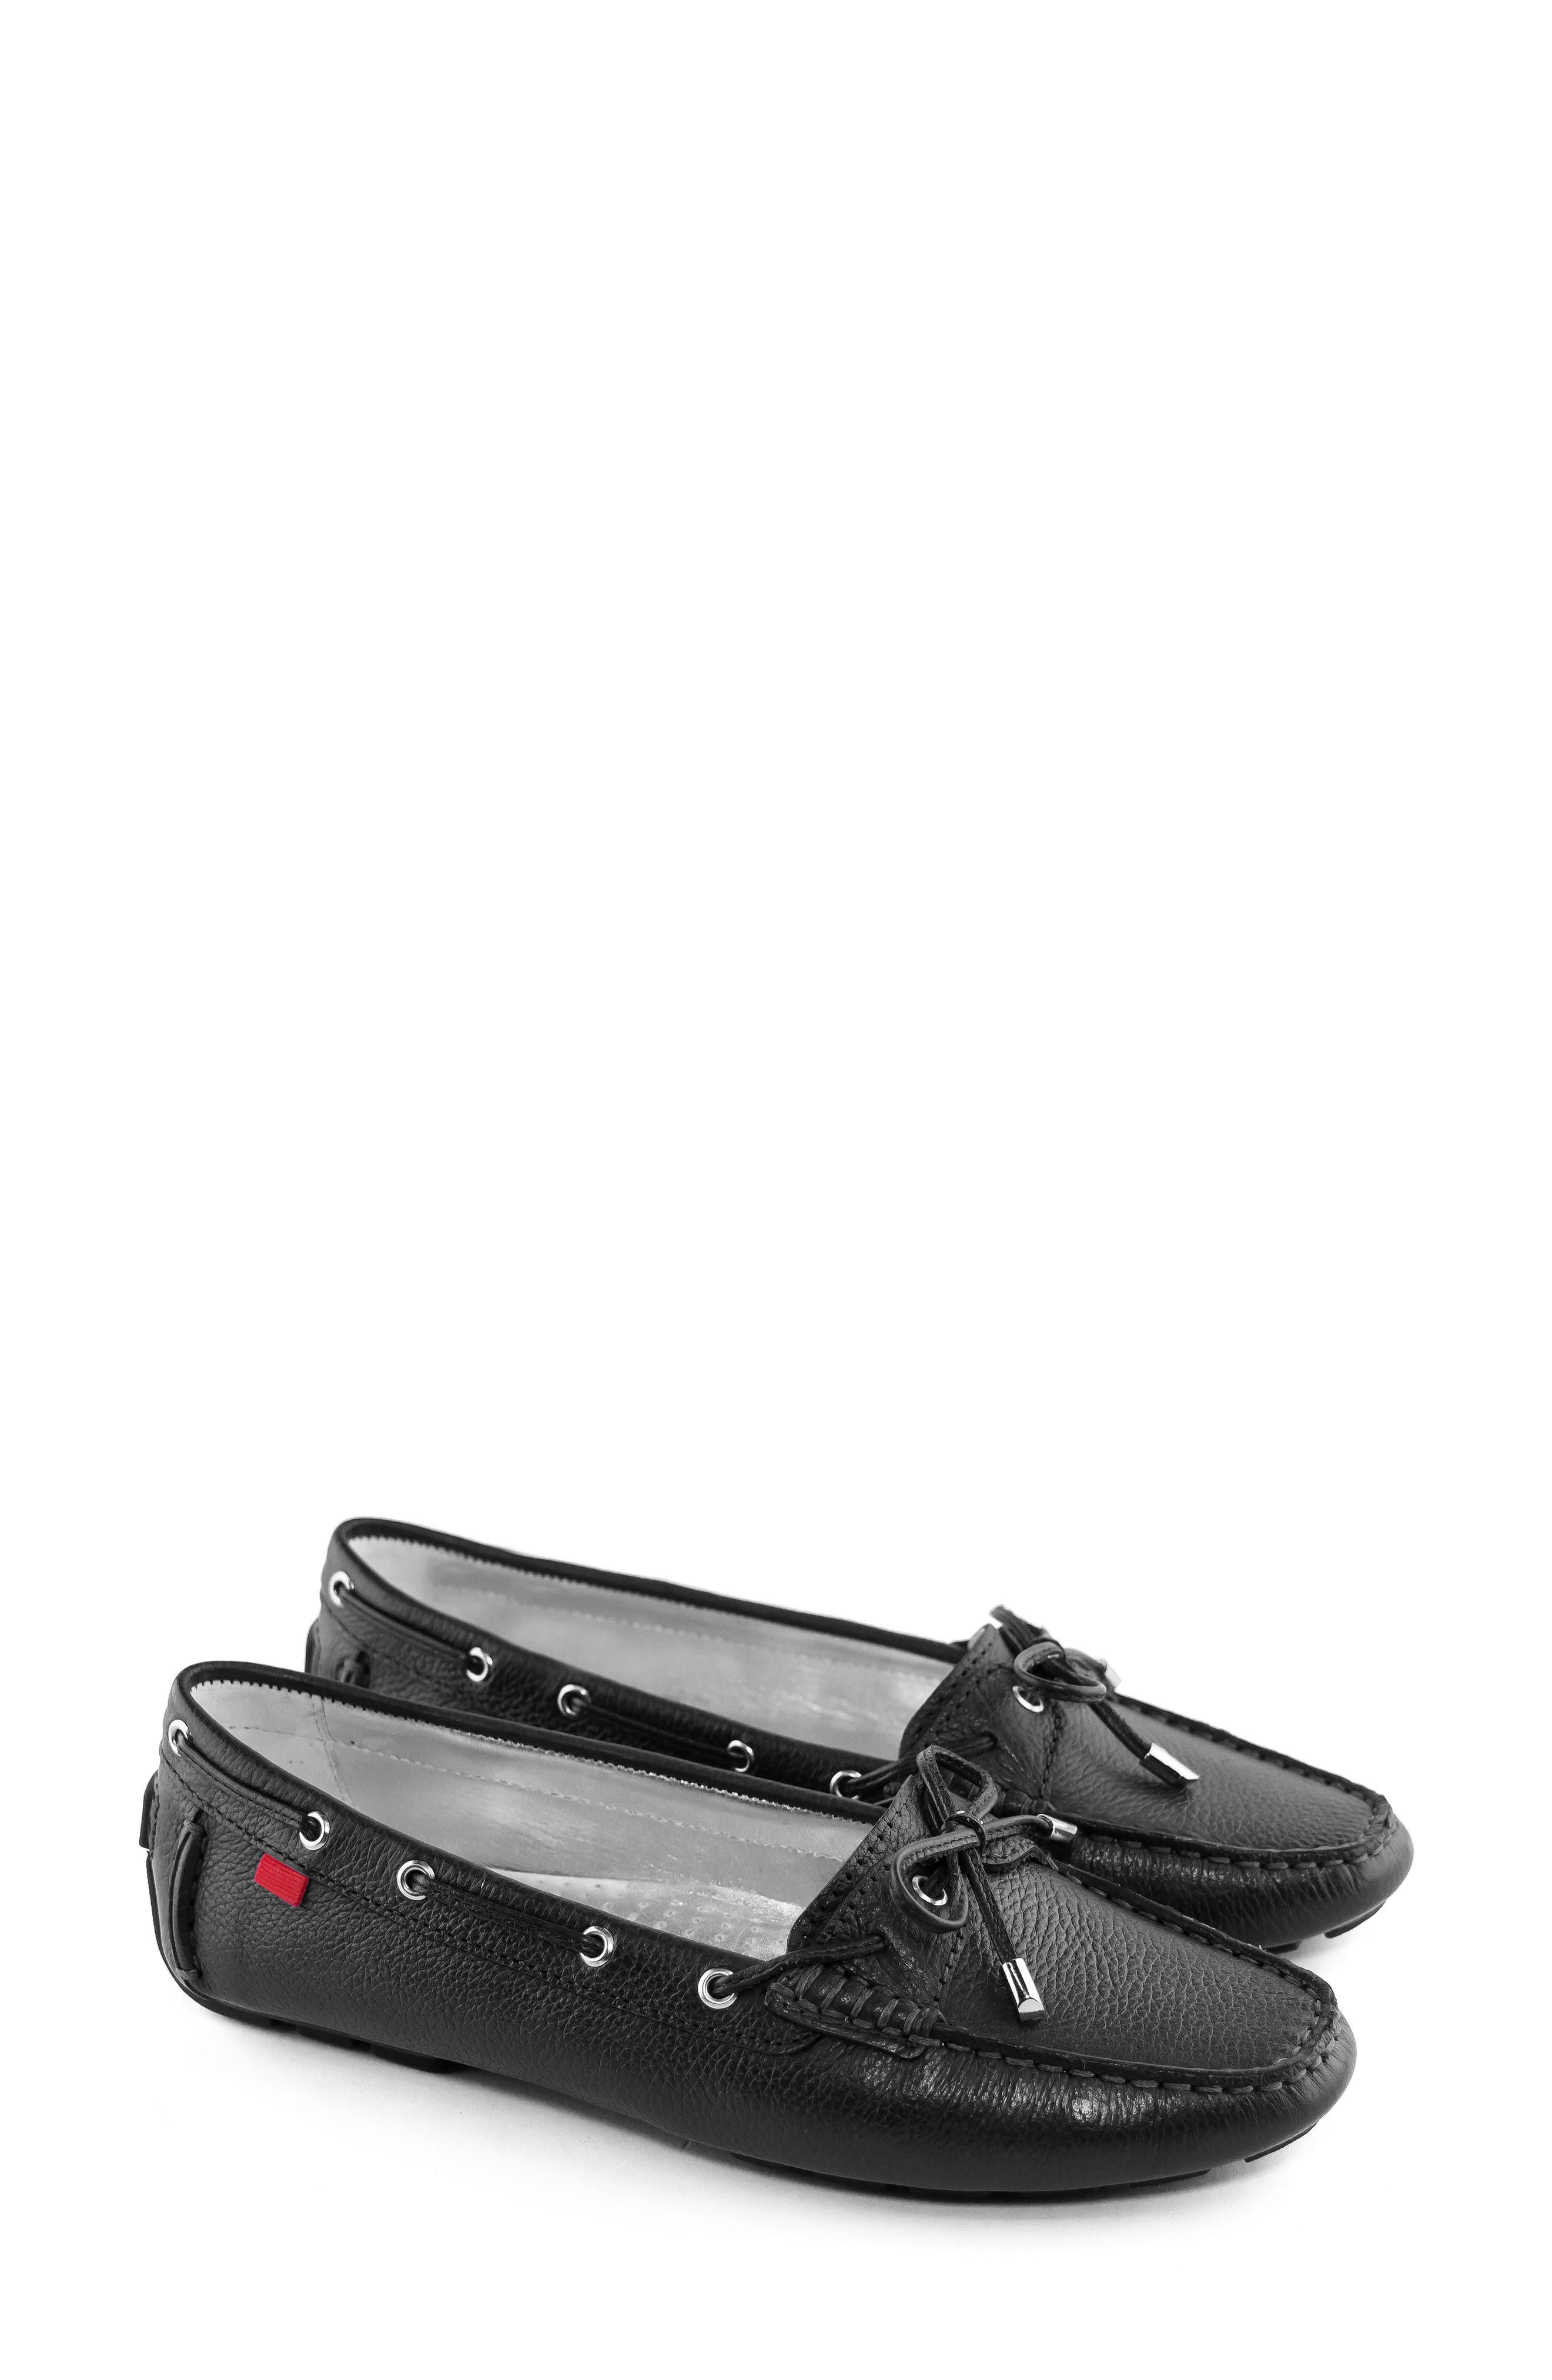 MARC JOSEPH NEW YORK, Rockaway Loafer, Alternate thumbnail 6, color, BLACK LEATHER